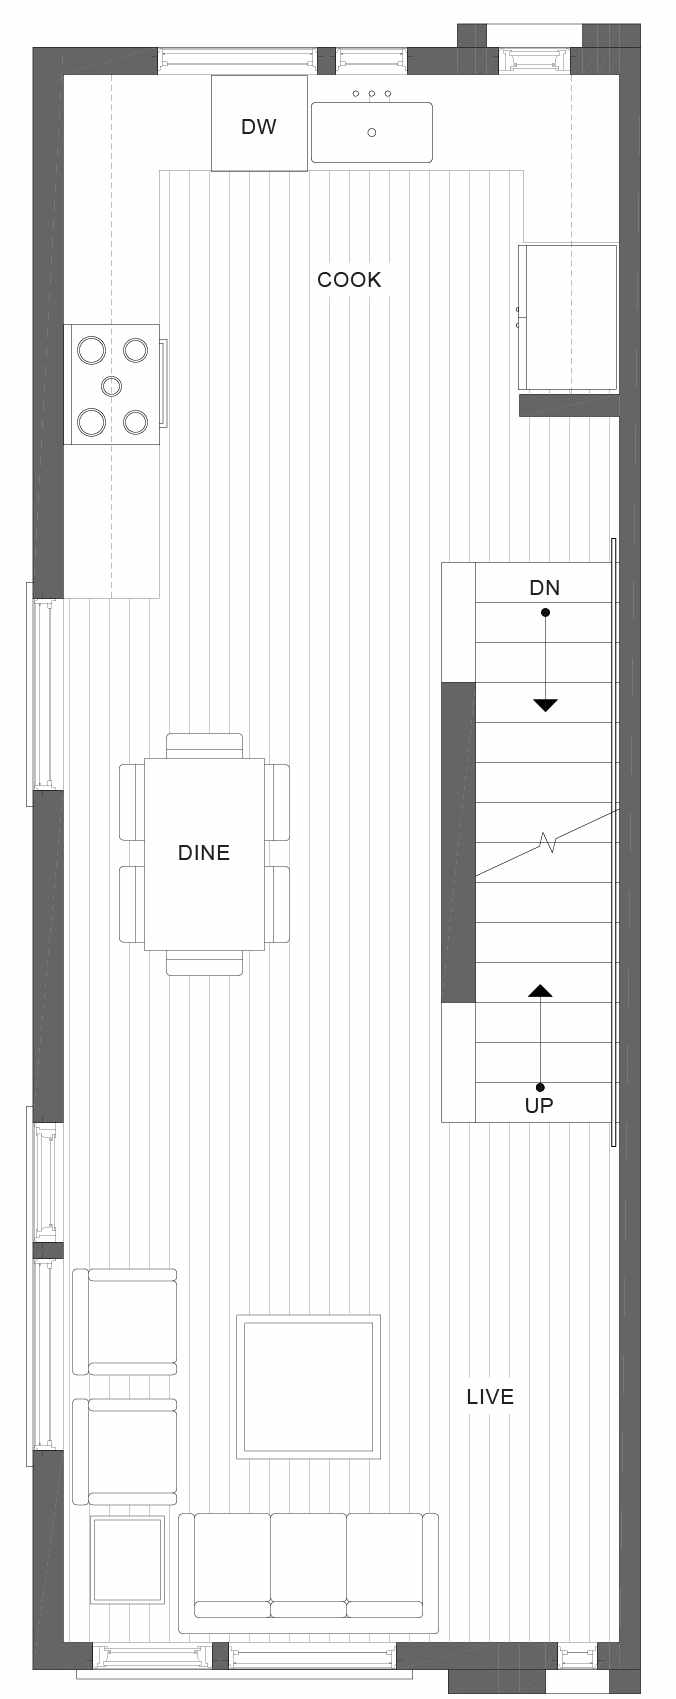 Second Floor Plan of 1105A 14th Ave in the Corazon Central Townhomes